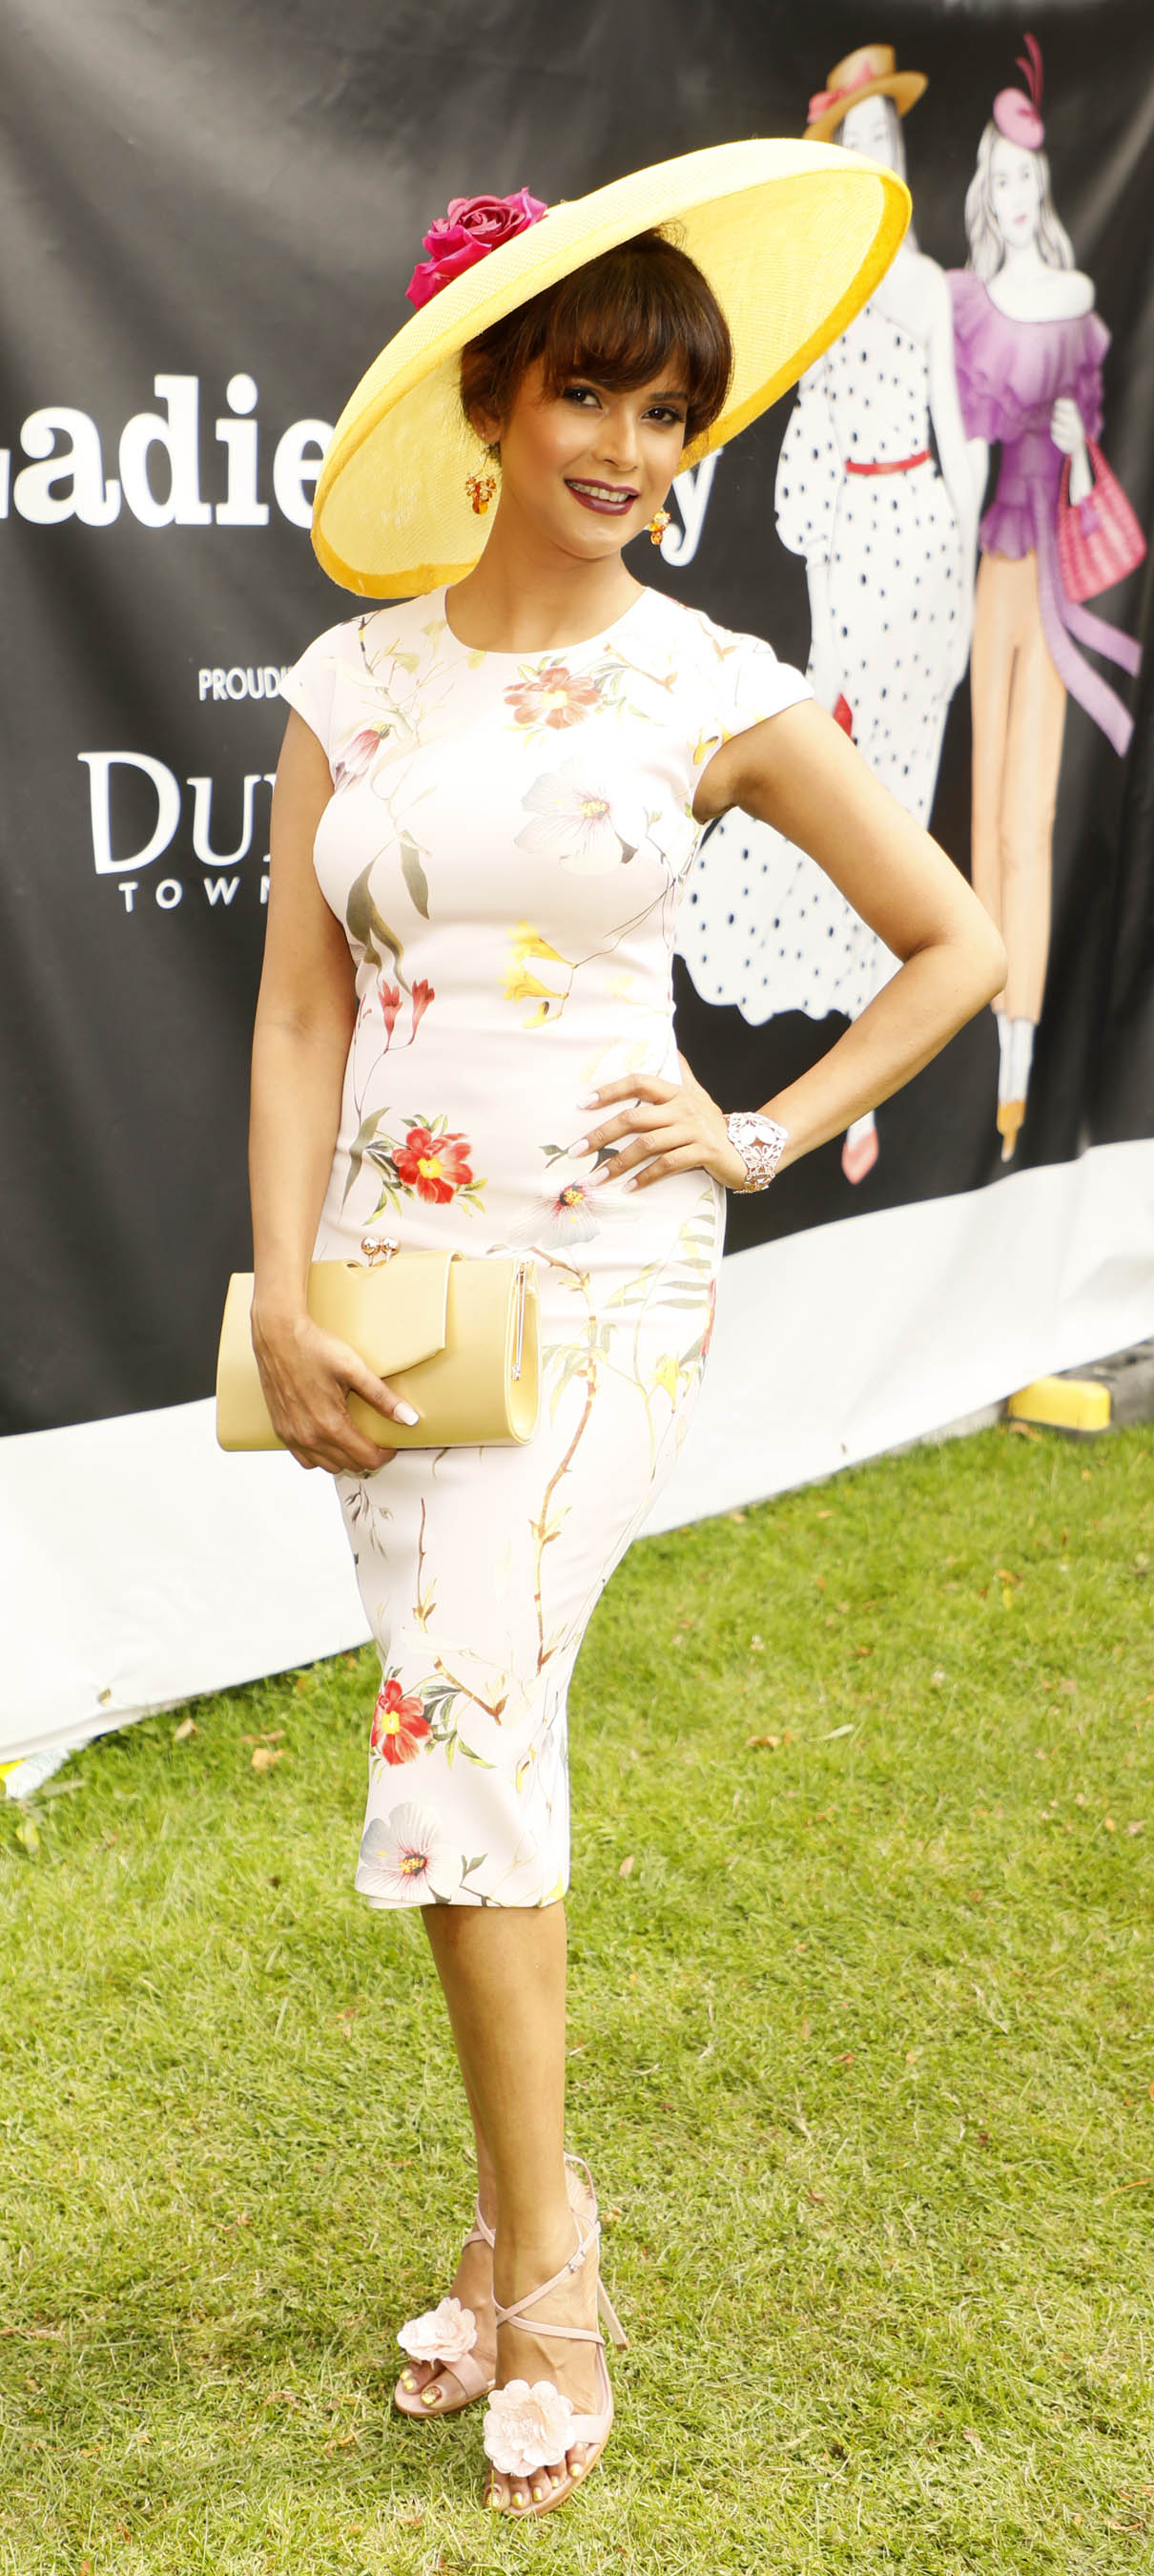 Maksuda Akhter at the Dundrum Town Centre Ladies' Day at the Dublin Horse Show in the RDS. Photo: Kieran Harnett